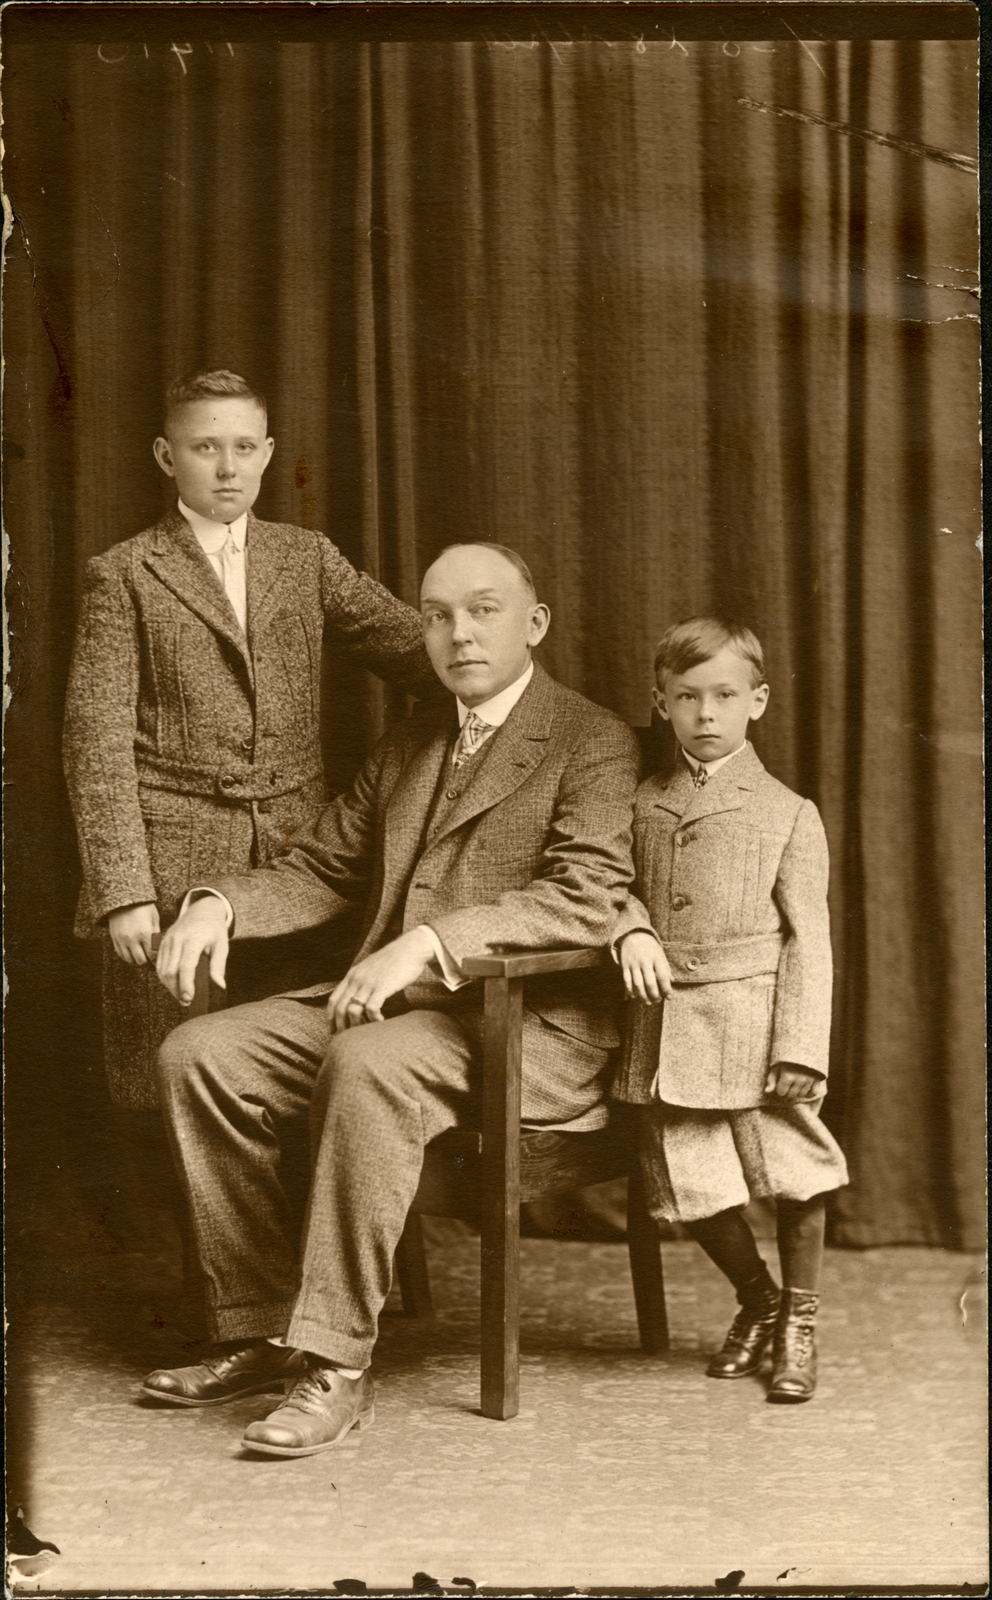 edward-r-betz-sons-unknown_large